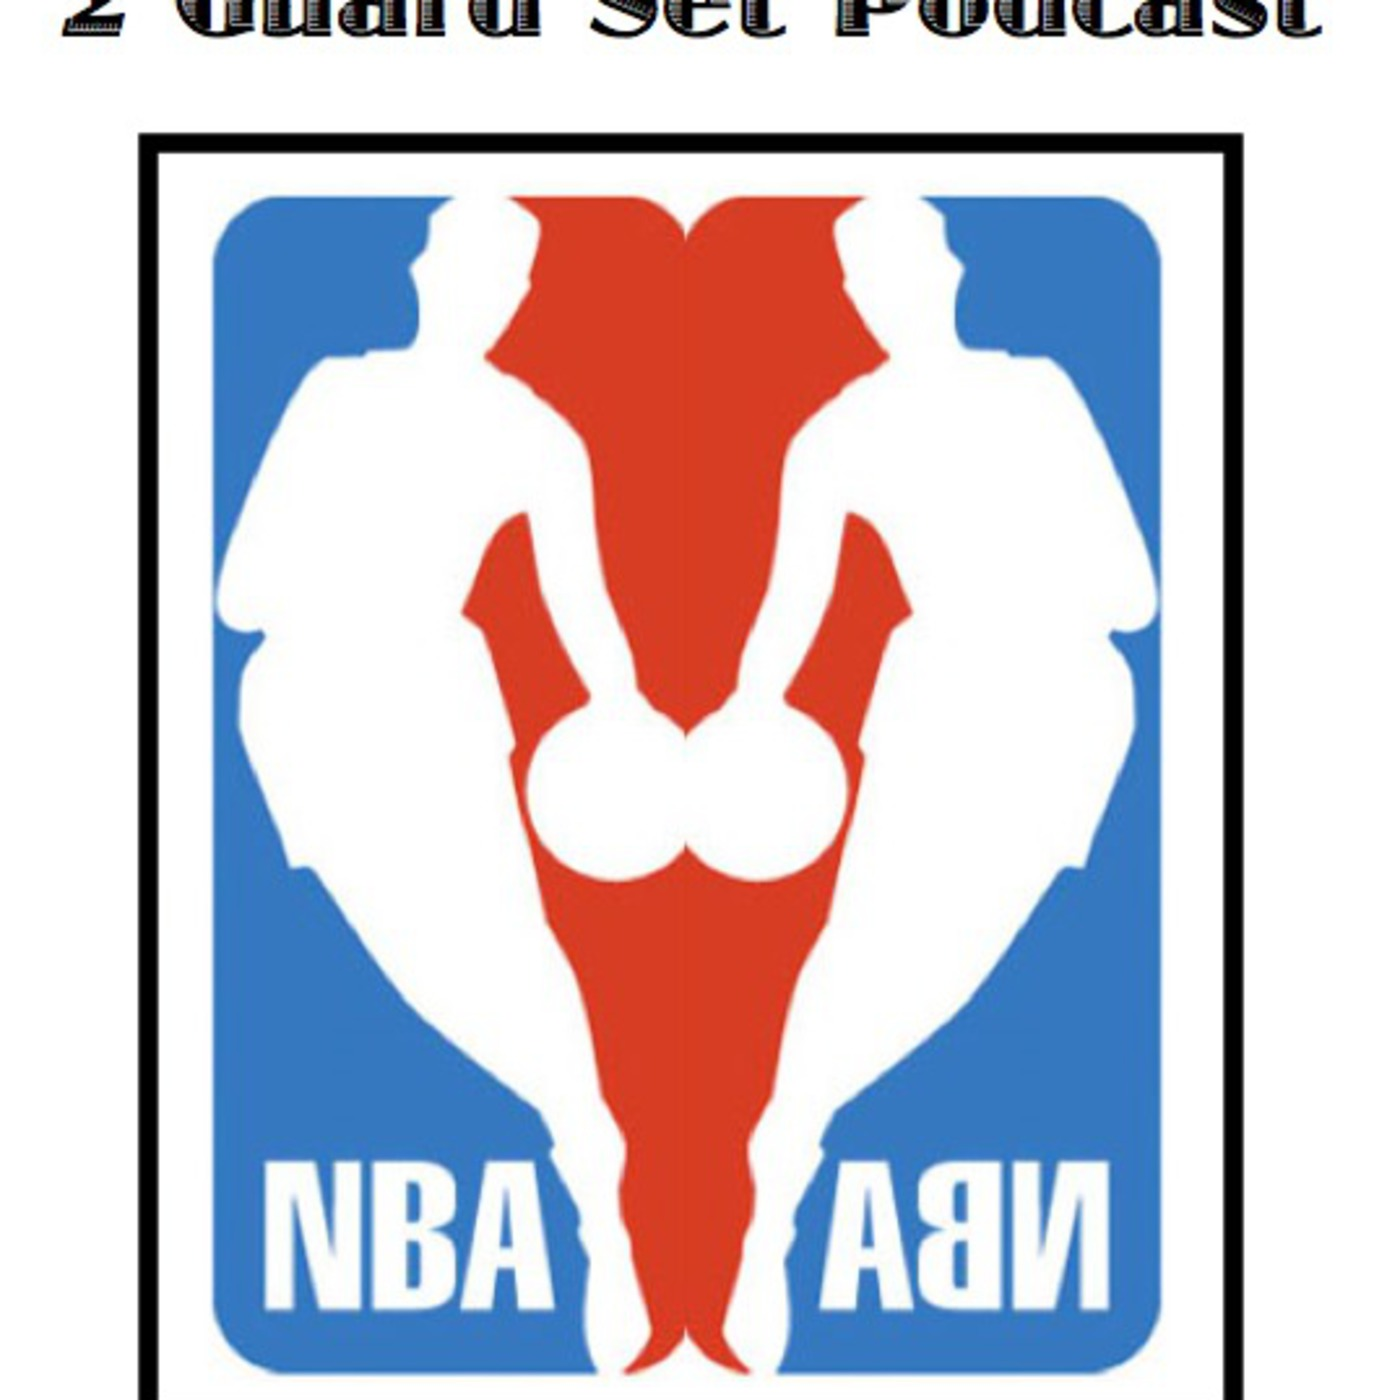 The Two Guard Set NBA Basketball Podcast